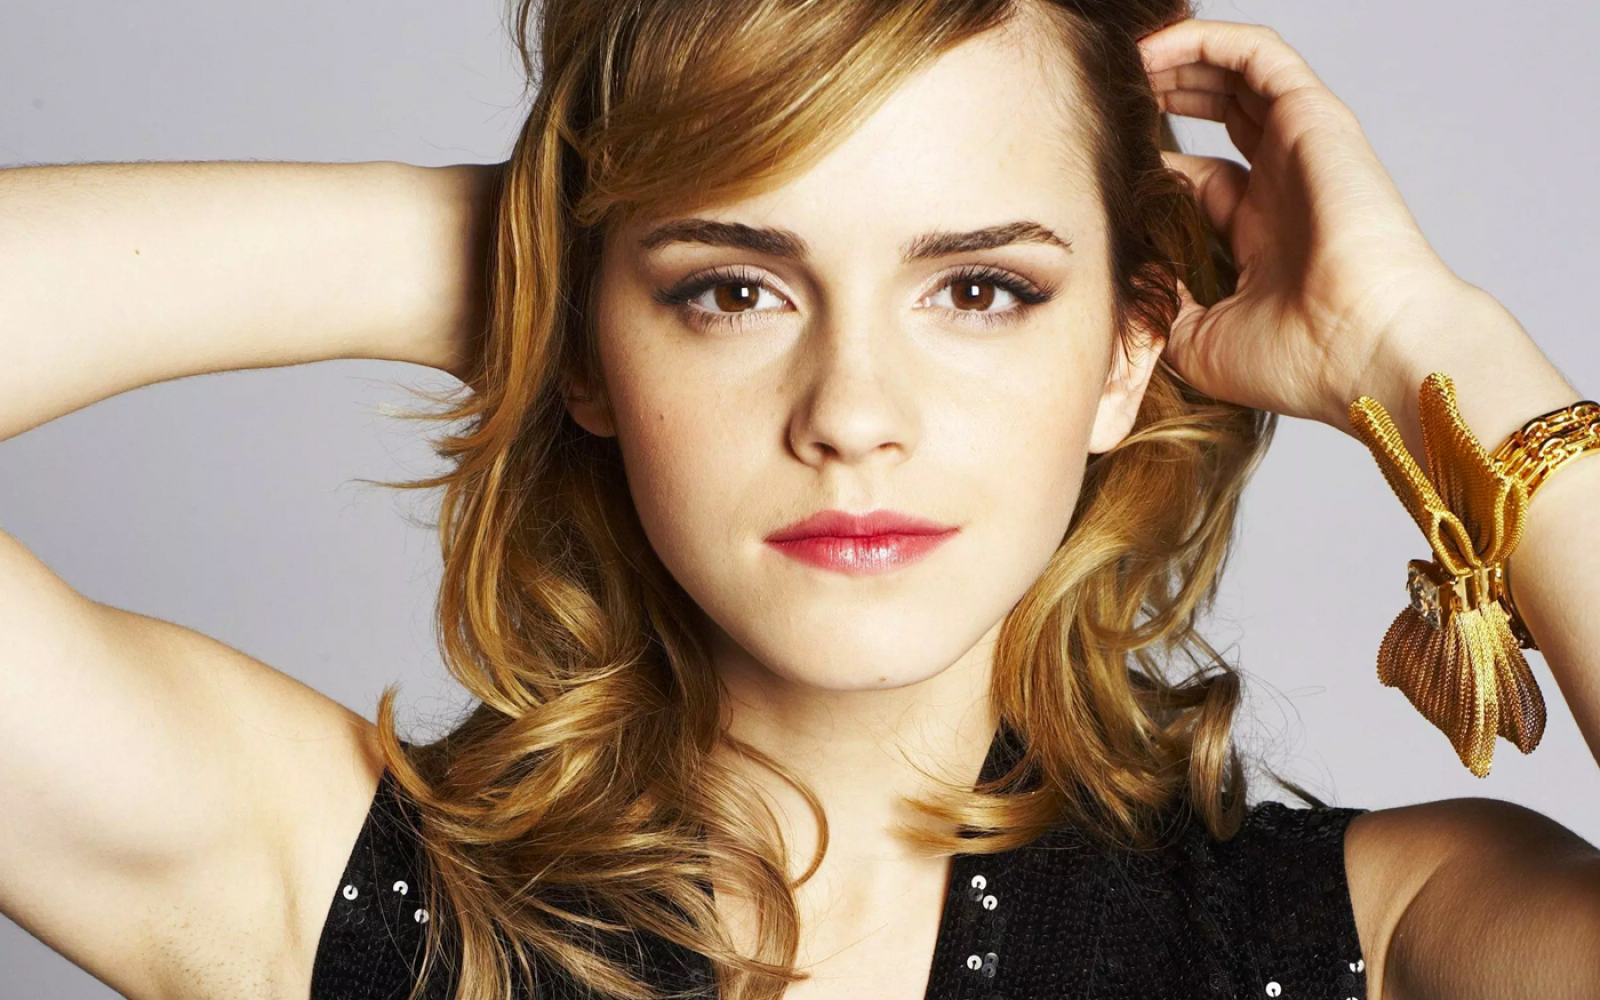 15 Empowering Emma Watson Quotes That Prove Why We Love Her